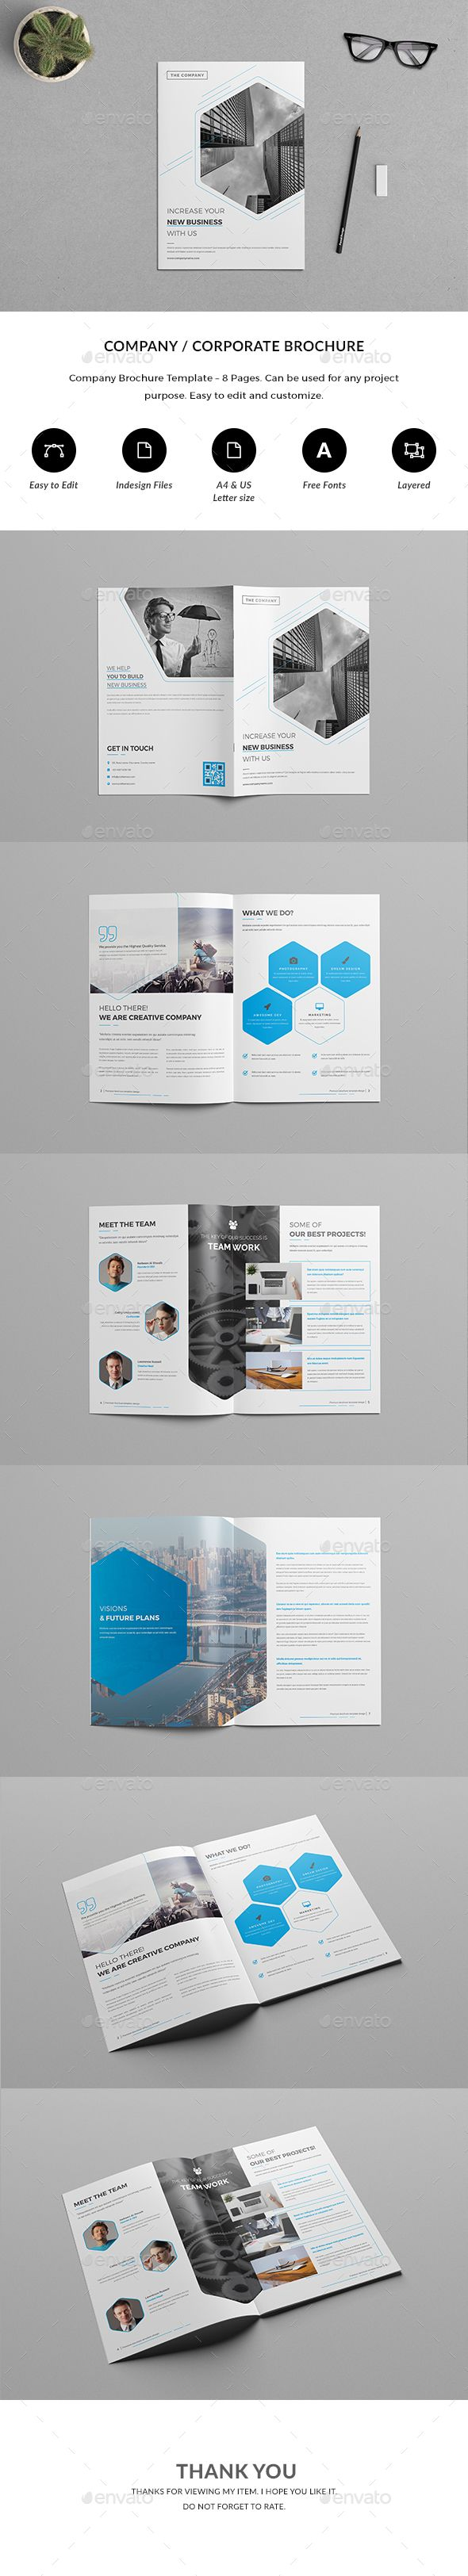 Page CompanyCorporate Brochure Corporate Brochure Brochures - Corporate brochure template